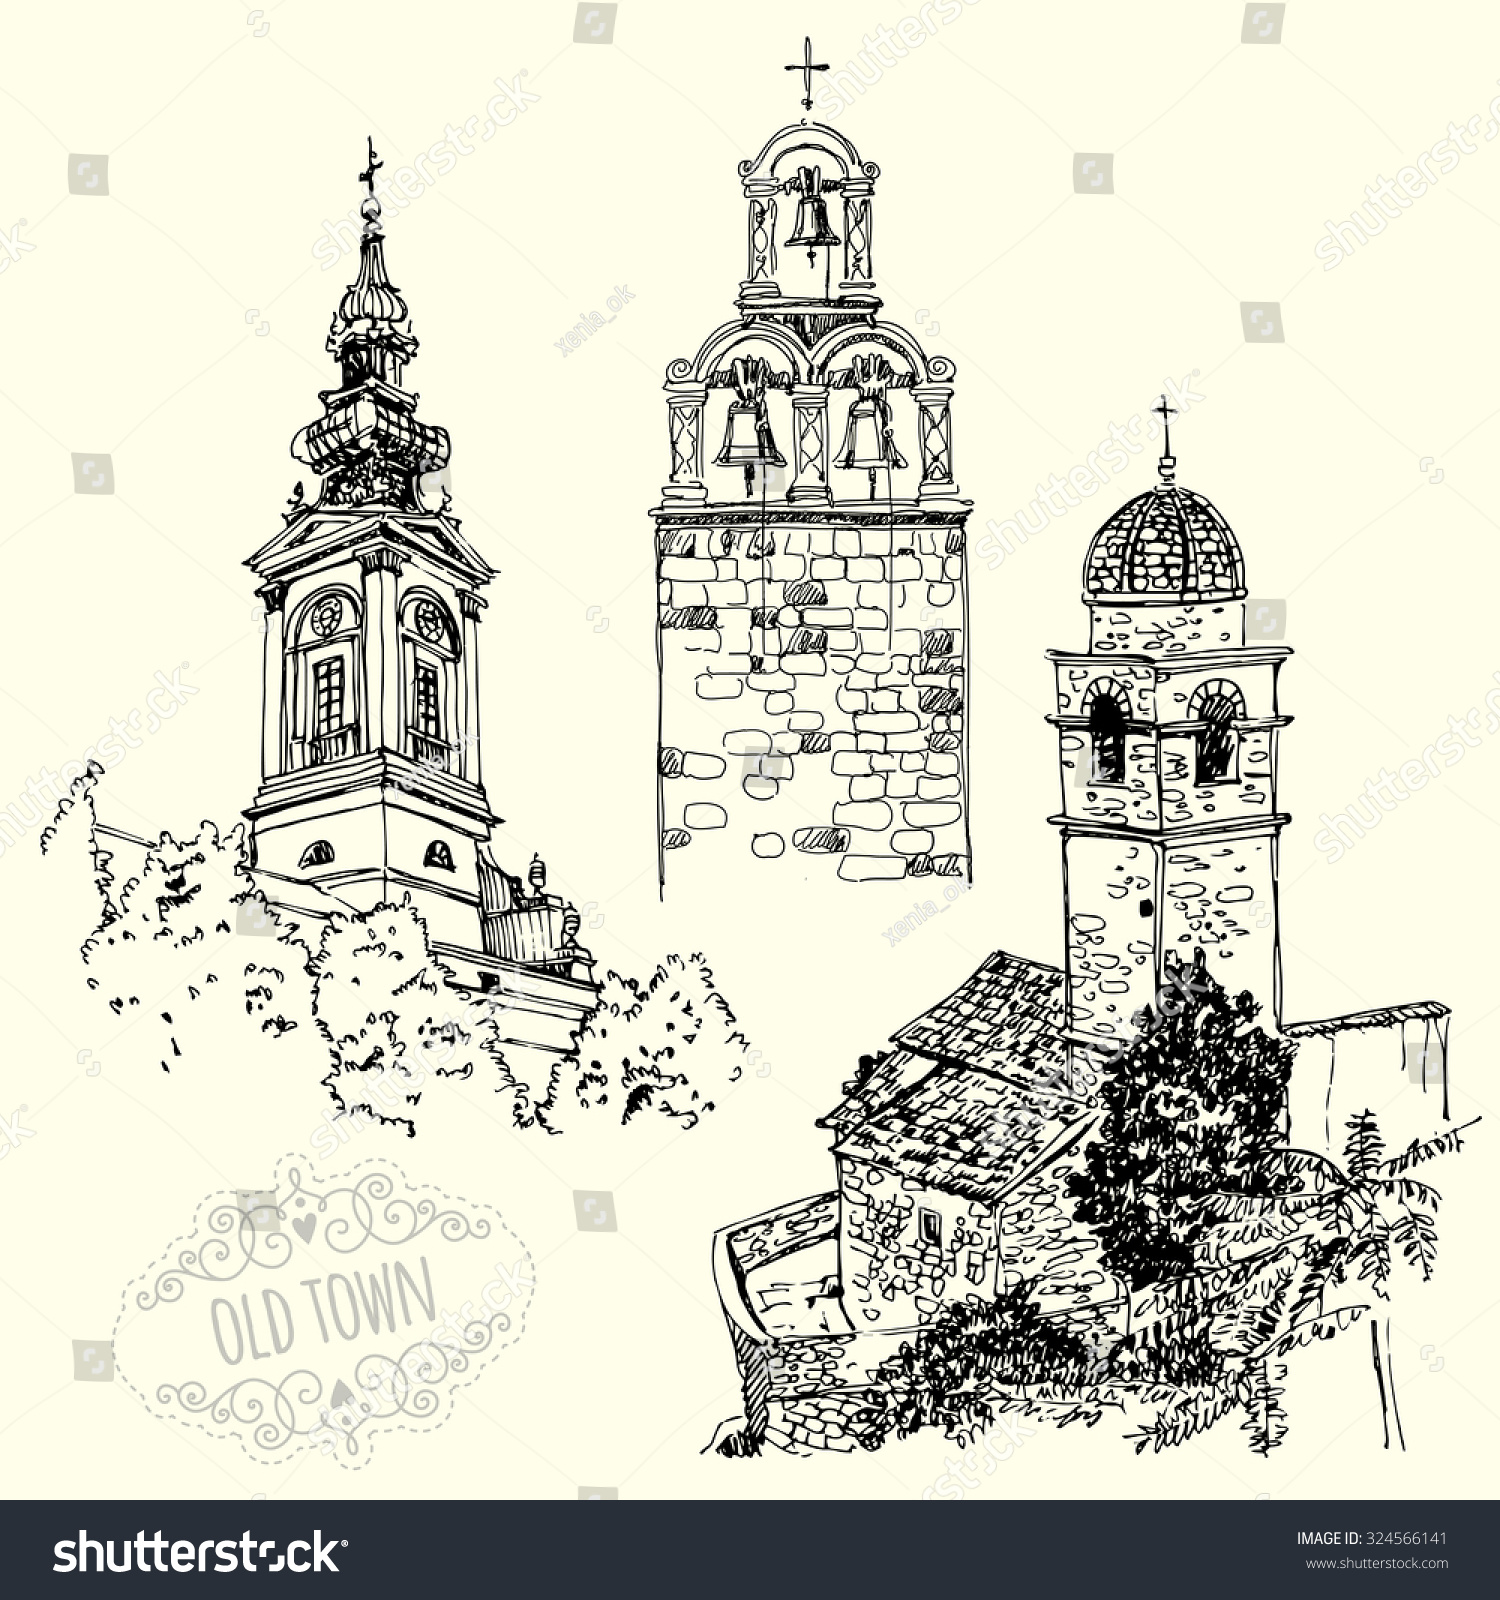 A set of drawings with ancient churches sketches old city freehand drawing